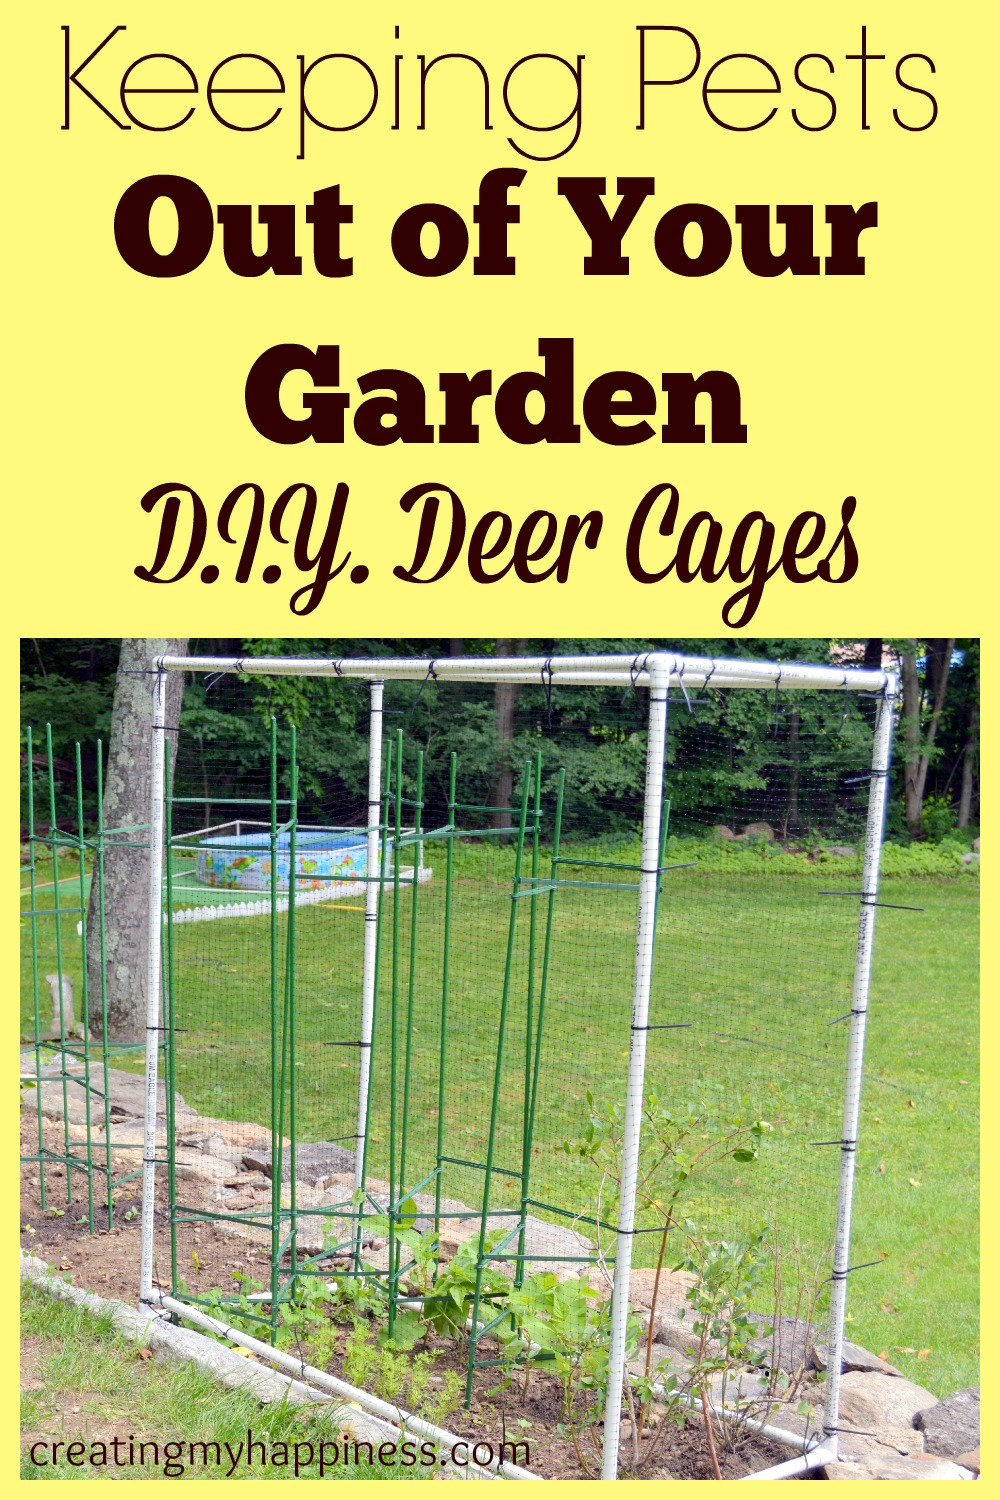 If you have a garden, you  know how hard it is to keep deer and other animals out! This is a definite garden must have.